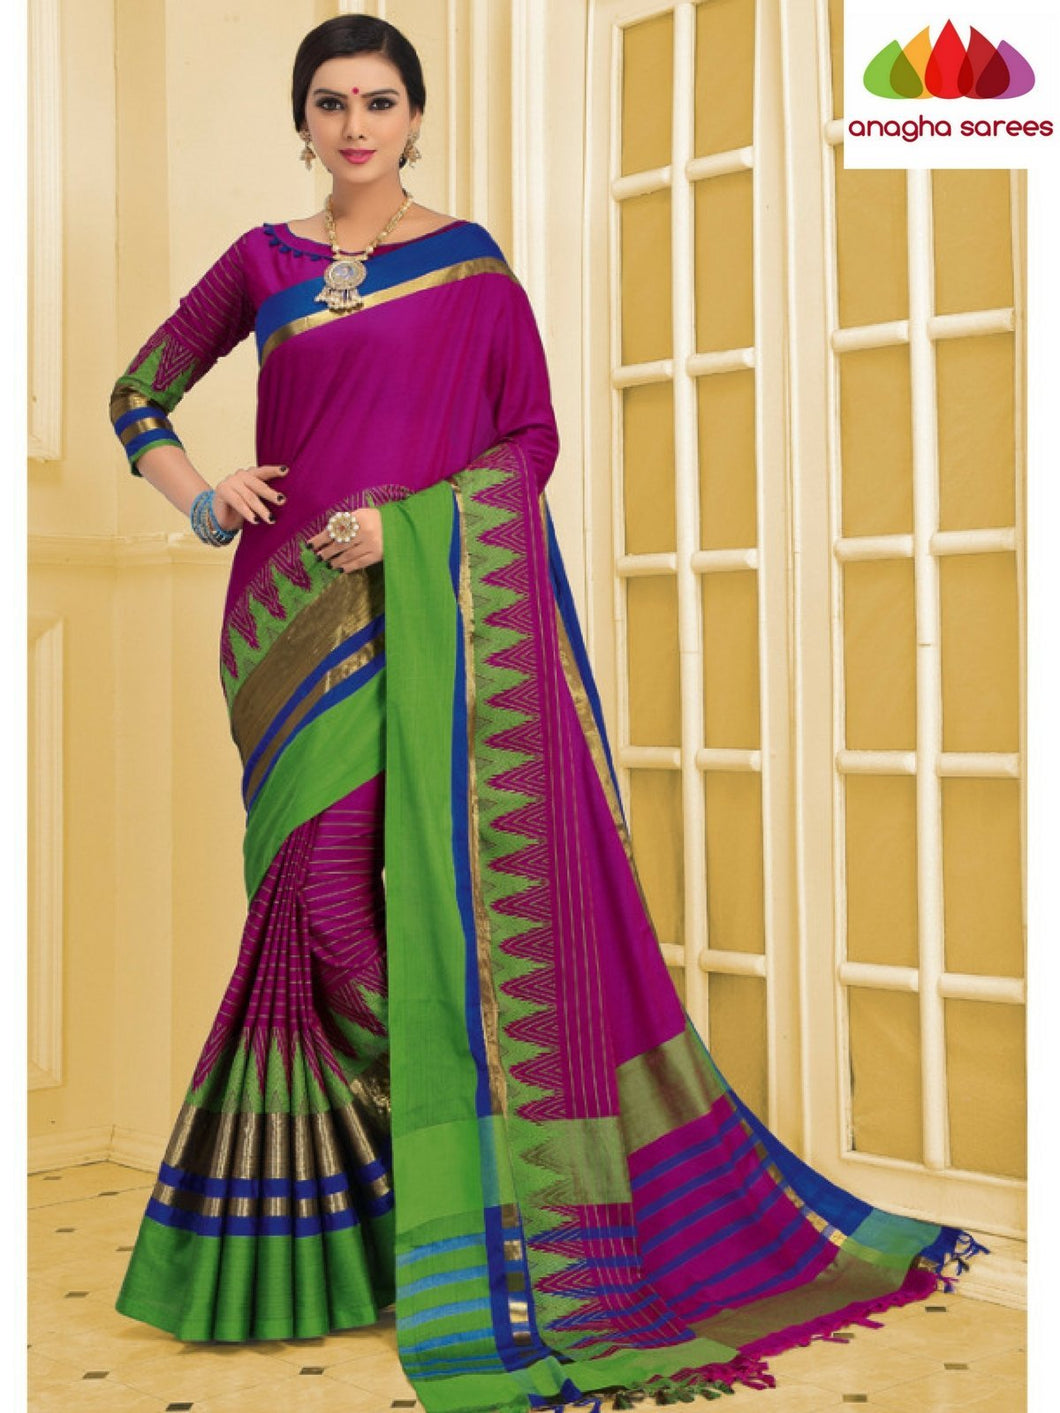 Anagha Sarees Cotton-silk Soft Cotton-Silk Saree - Magenta ANA_C07